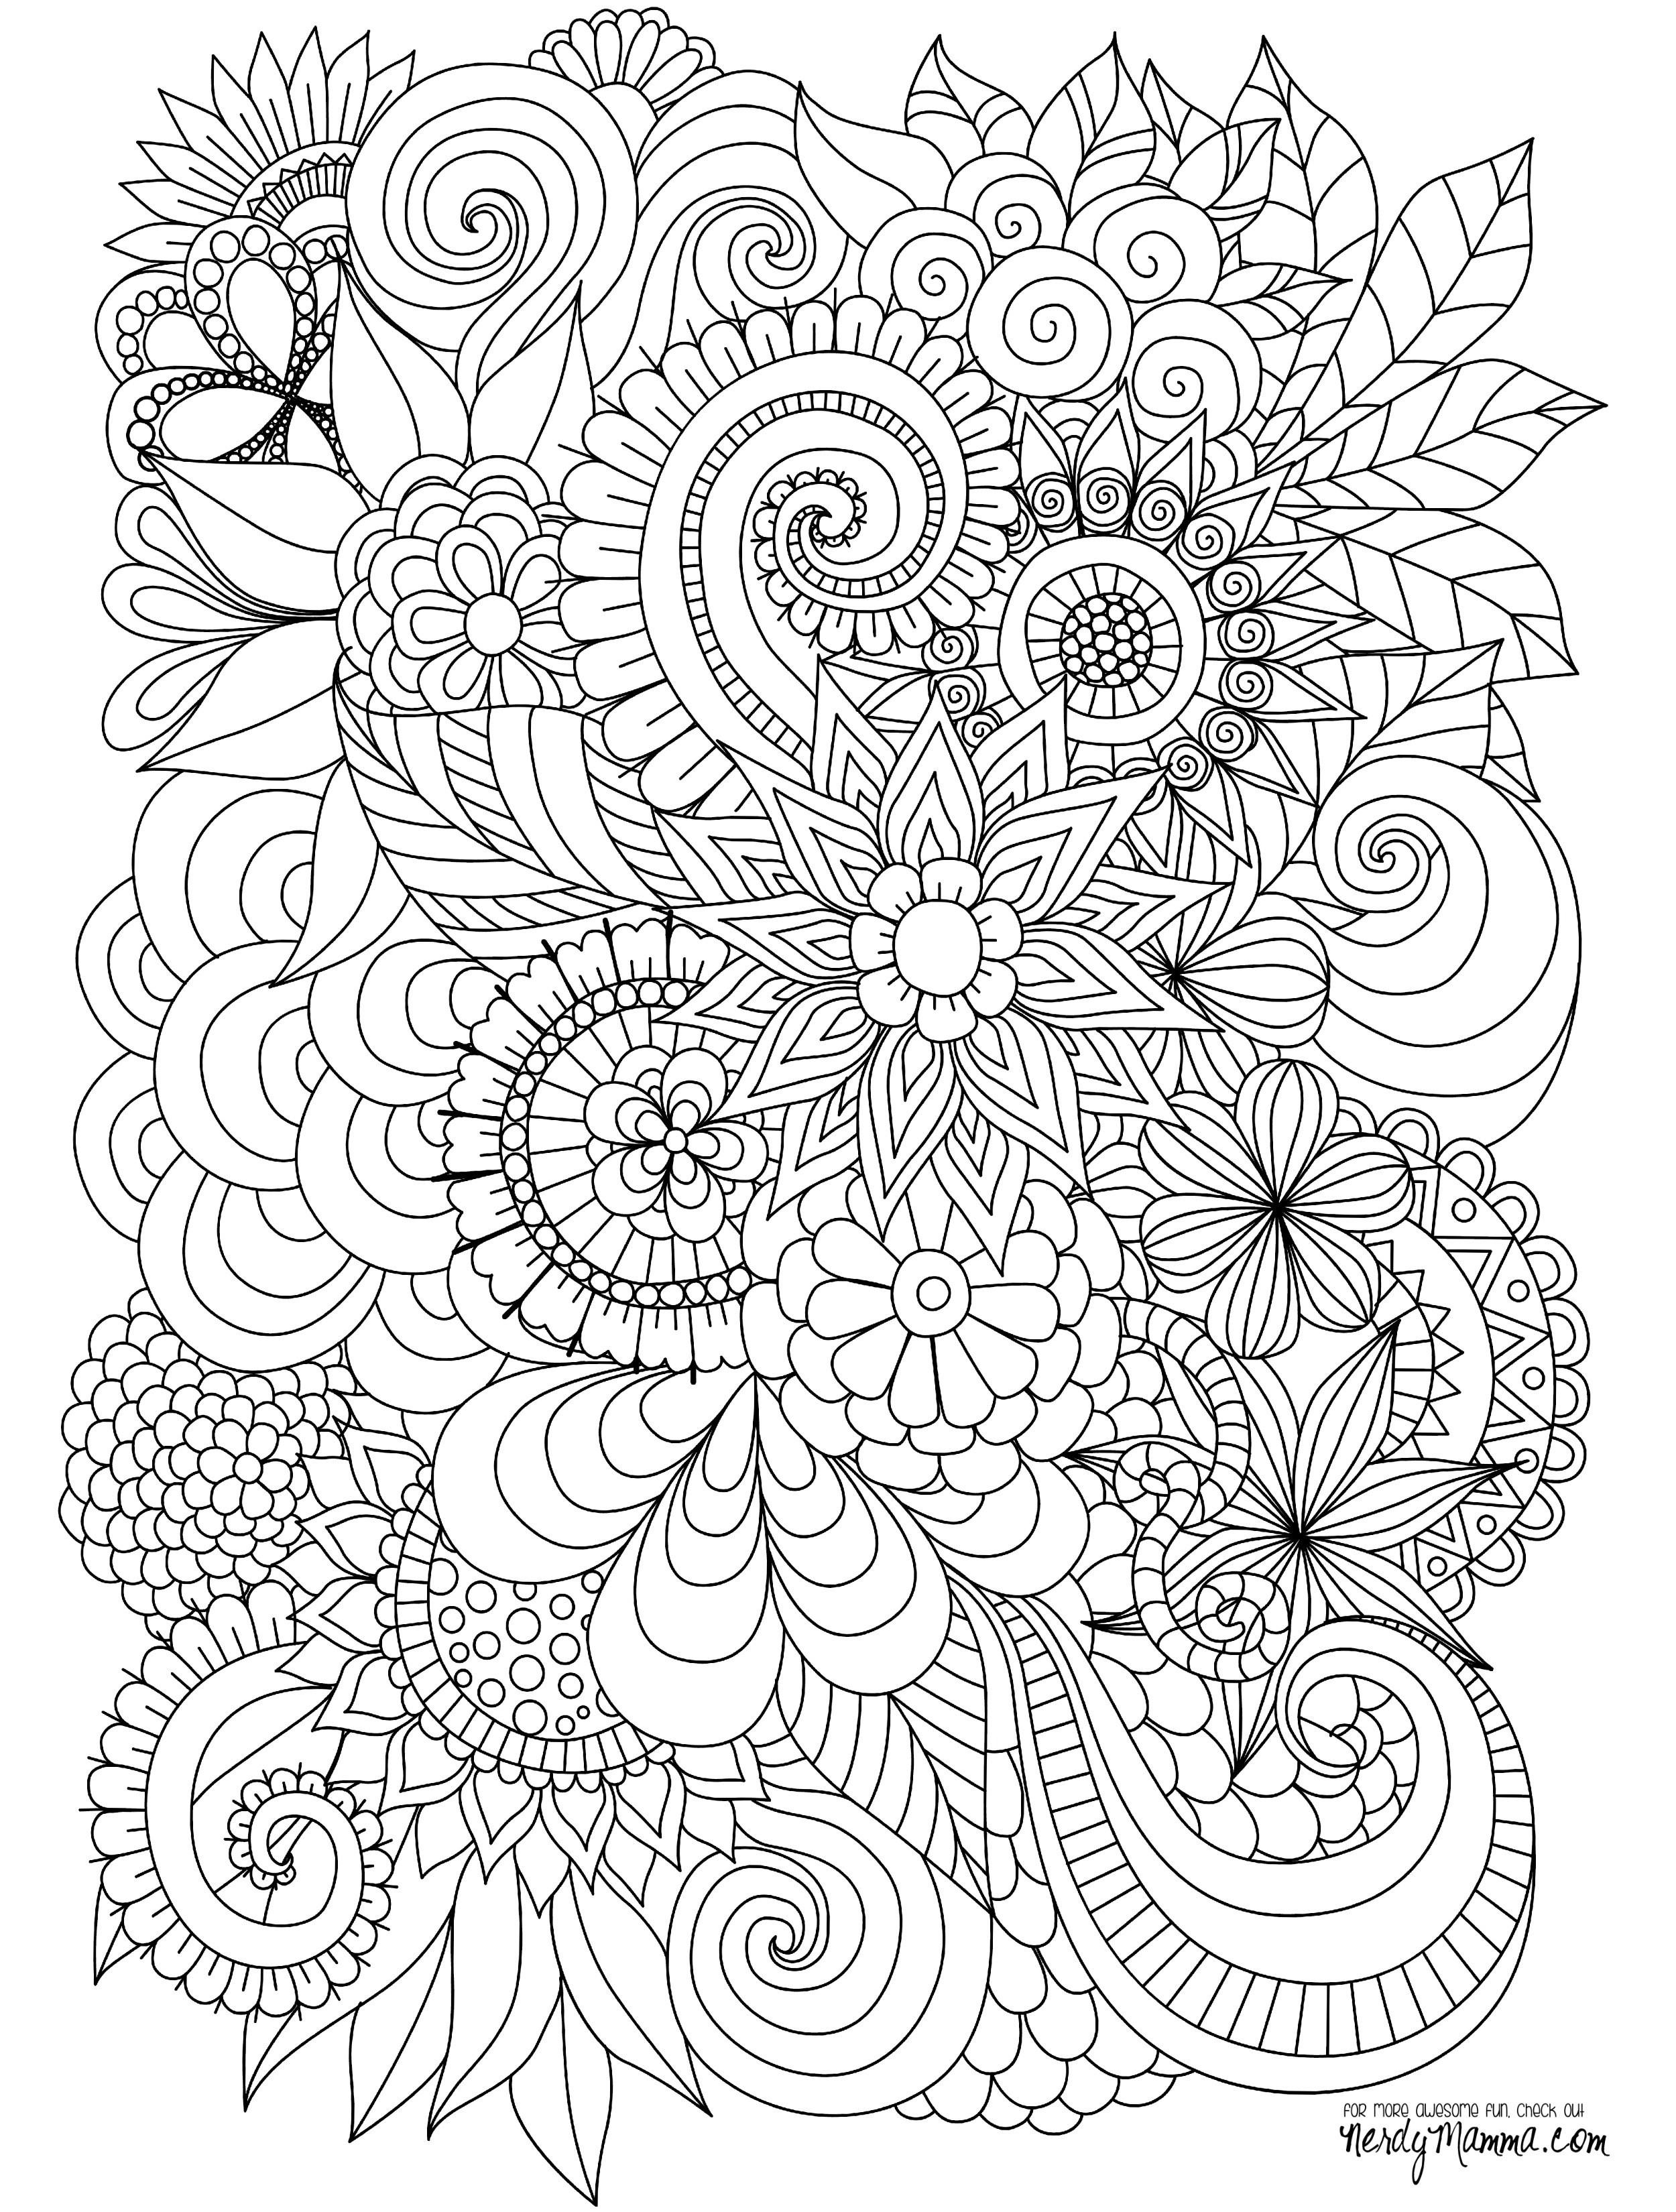 zentangle coloring pages free printable free printable zentangle coloring pages for adults zentangle free pages coloring printable